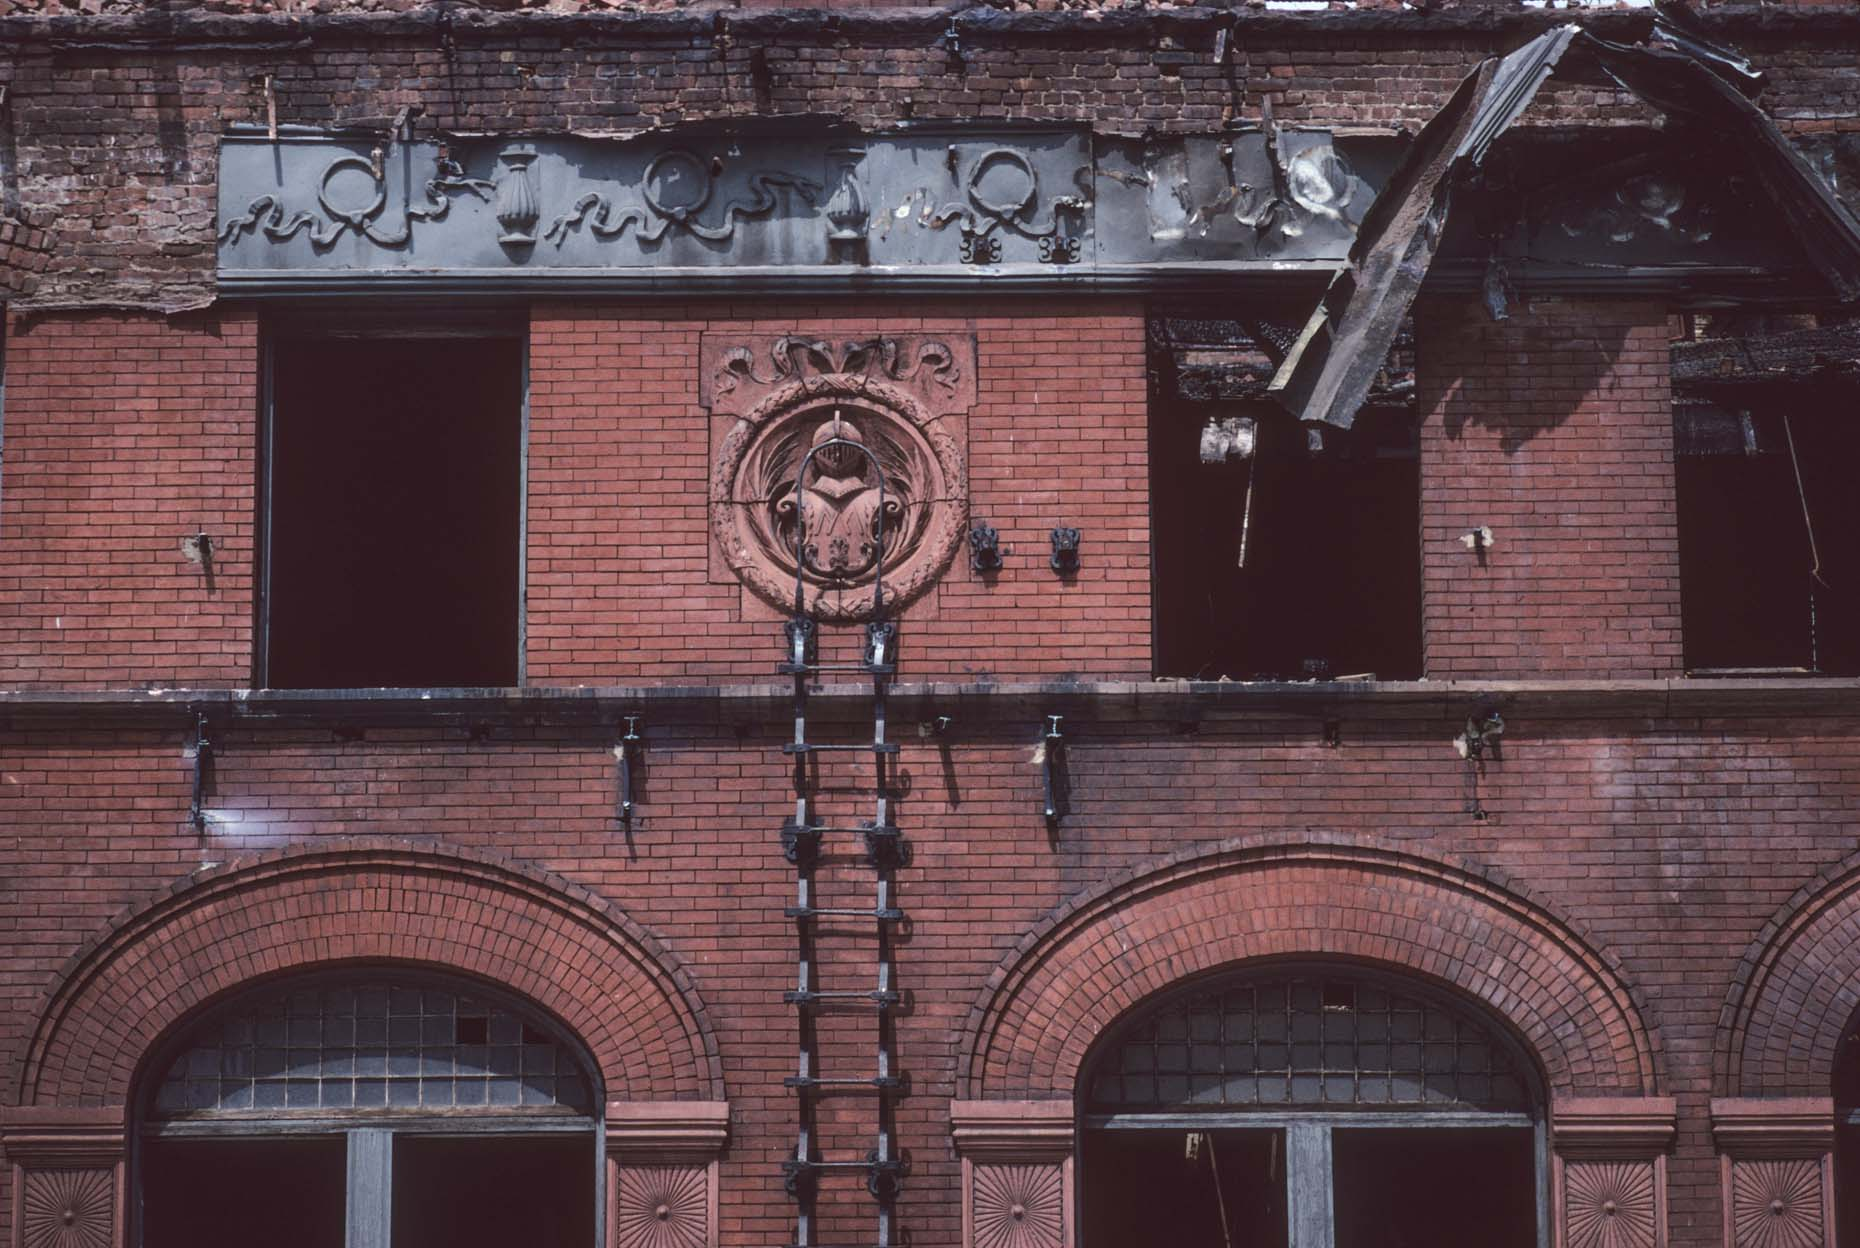 08_Former Corn Exchange Bank, detail, E-DUP. 125th St. at Park Ave., Harlem 1997_.jpg